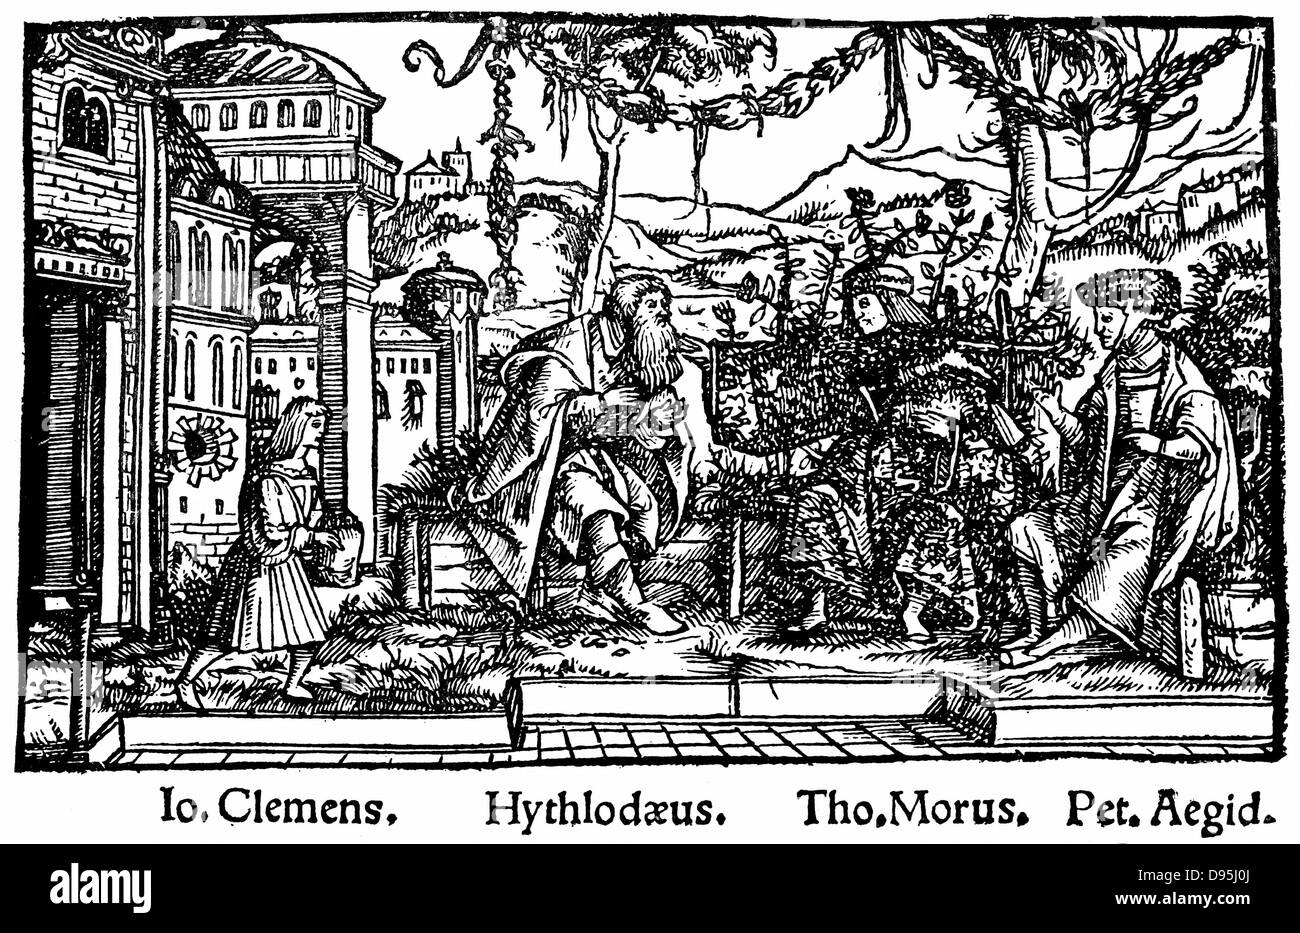 Headpiece from Thomas Moore's work depicting an ideal state where reason ruled, 'Utopia' 1518 (Ist edition - Stock Image